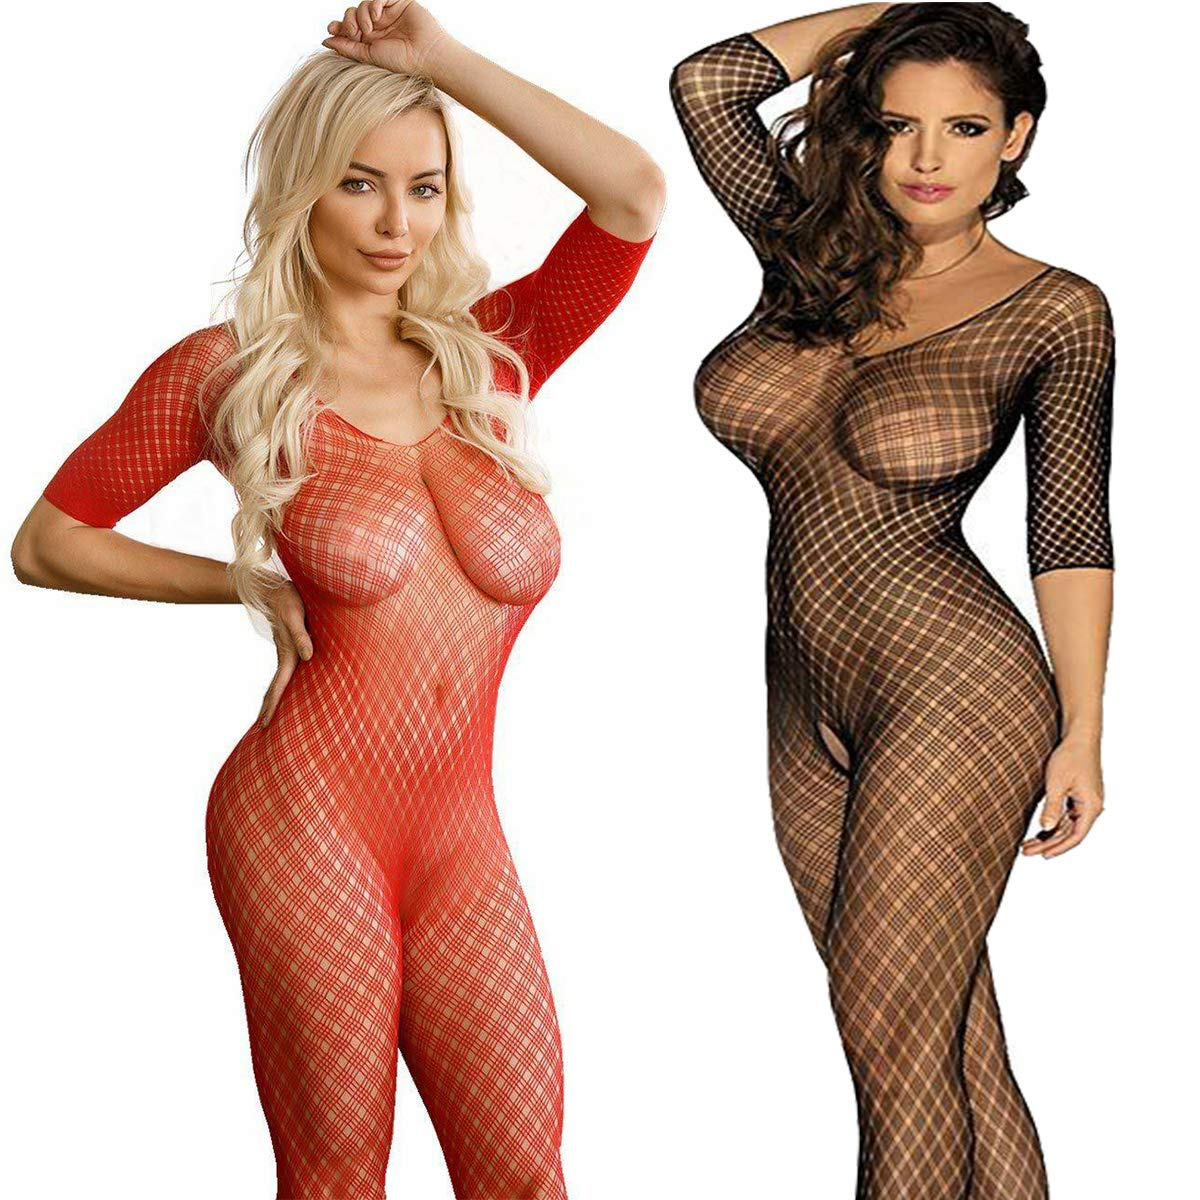 LOVELYBOBO 2 Pack Womens Fishnet Long Sleeve Bodystockings Striped Lingerie Crotchless Bodysuits Tights Plus Size (Black+red)